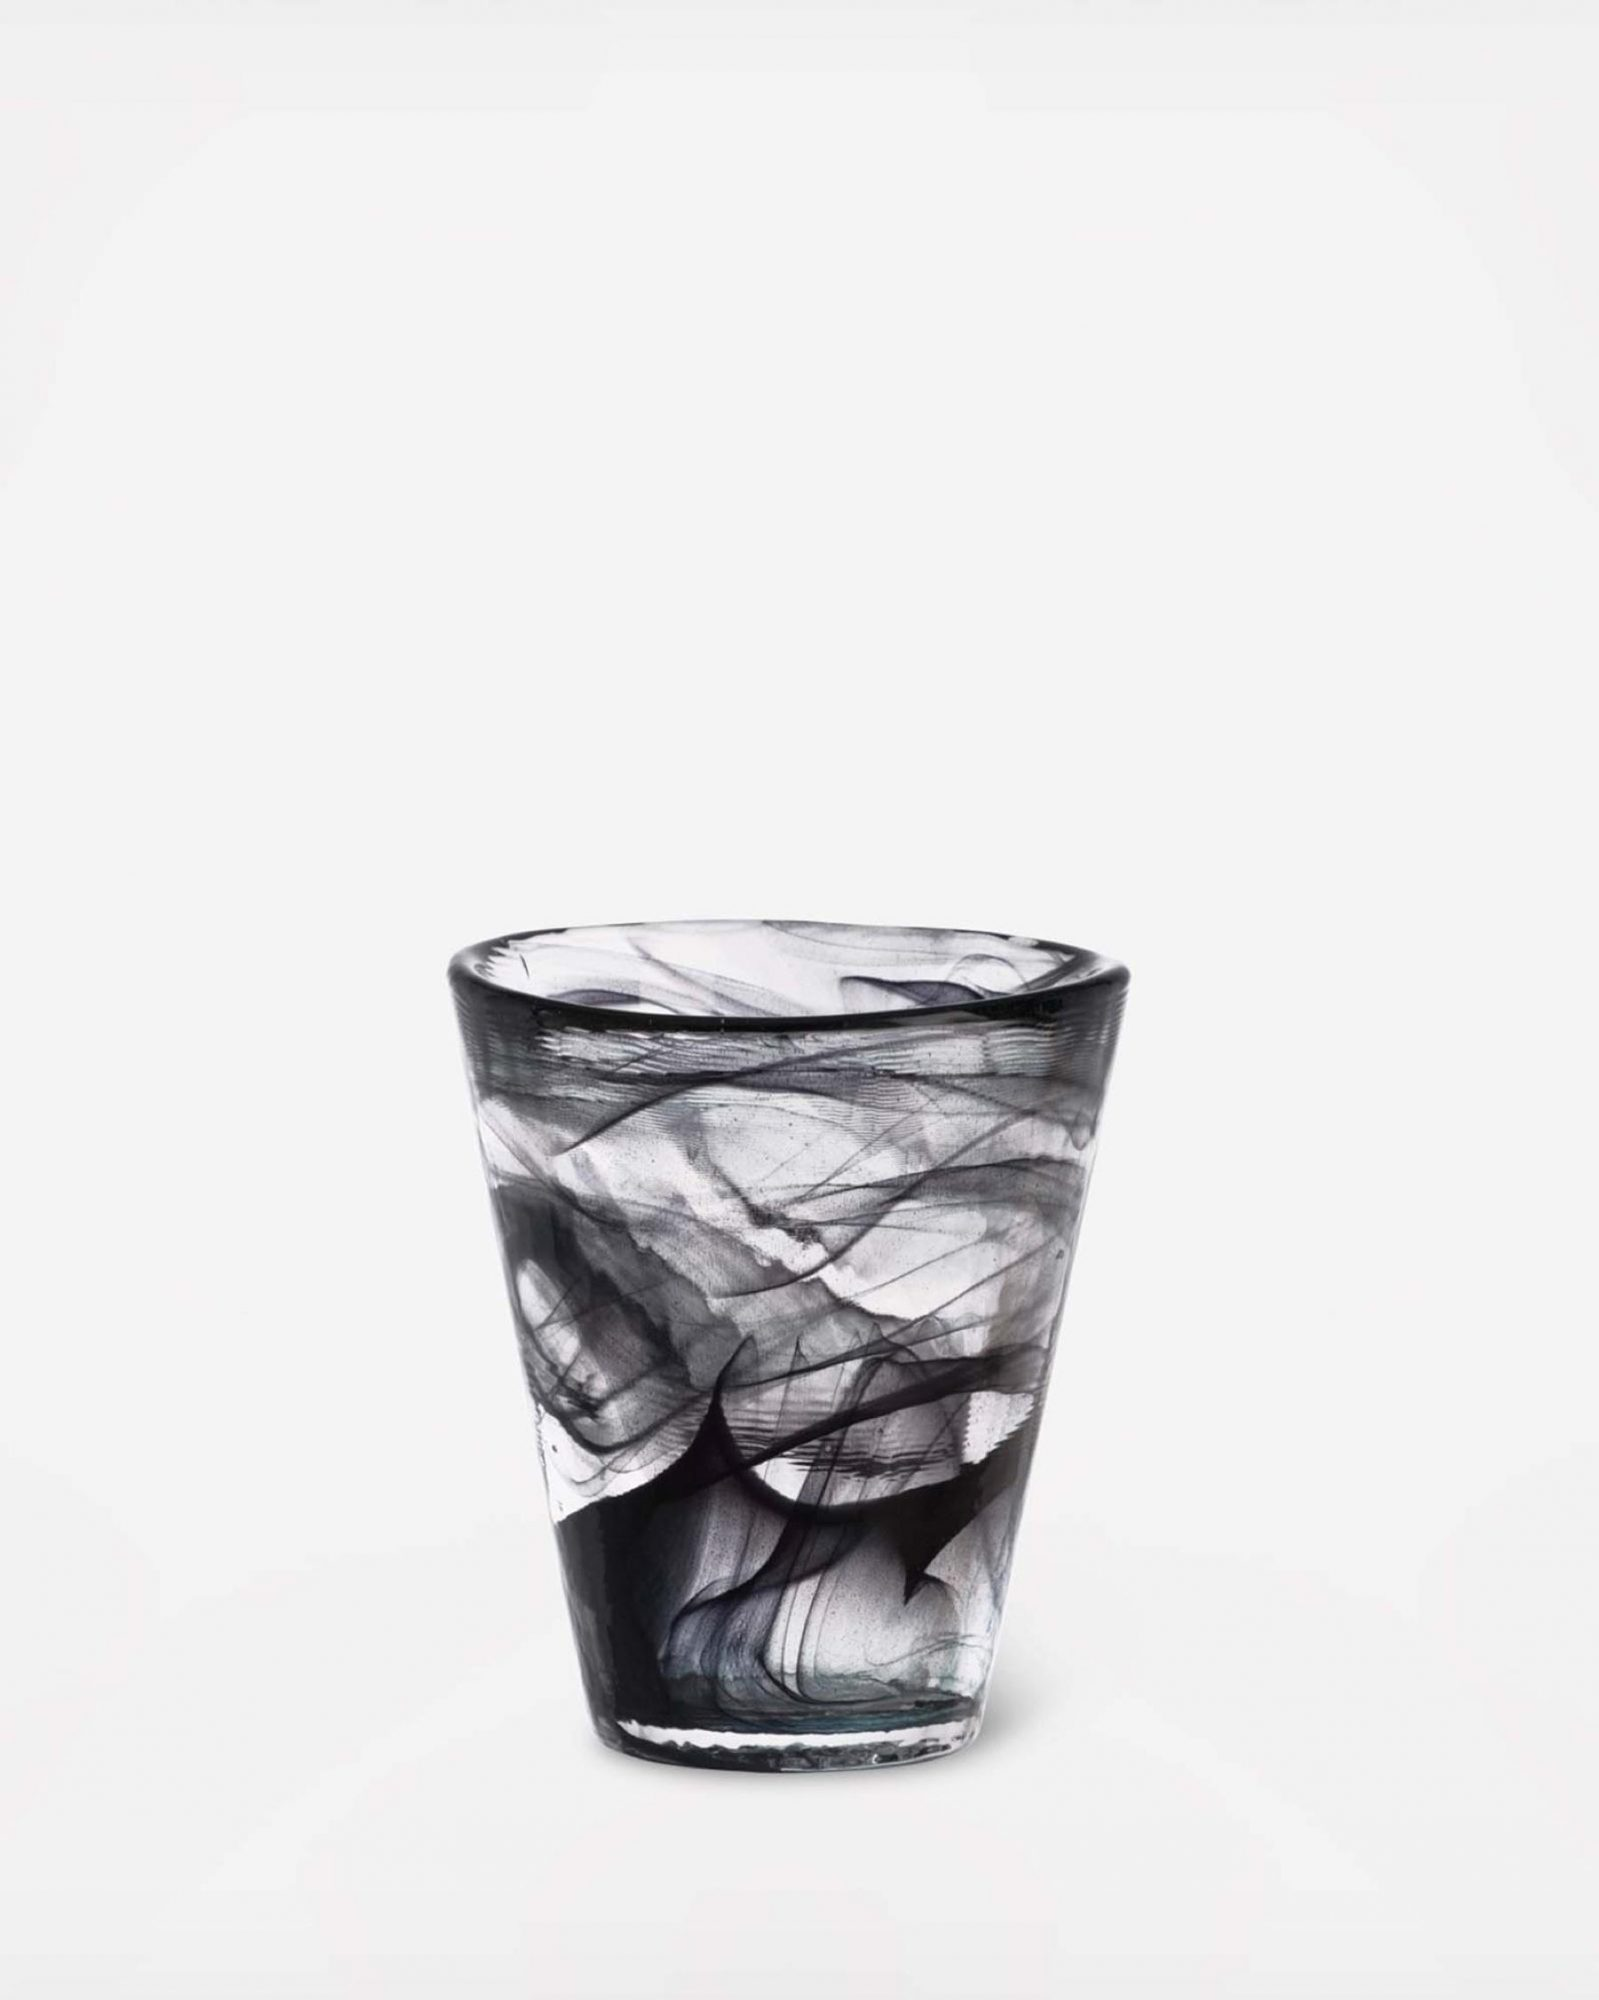 zola-halloween-party-decor-kosta-boda-tumbler-1015